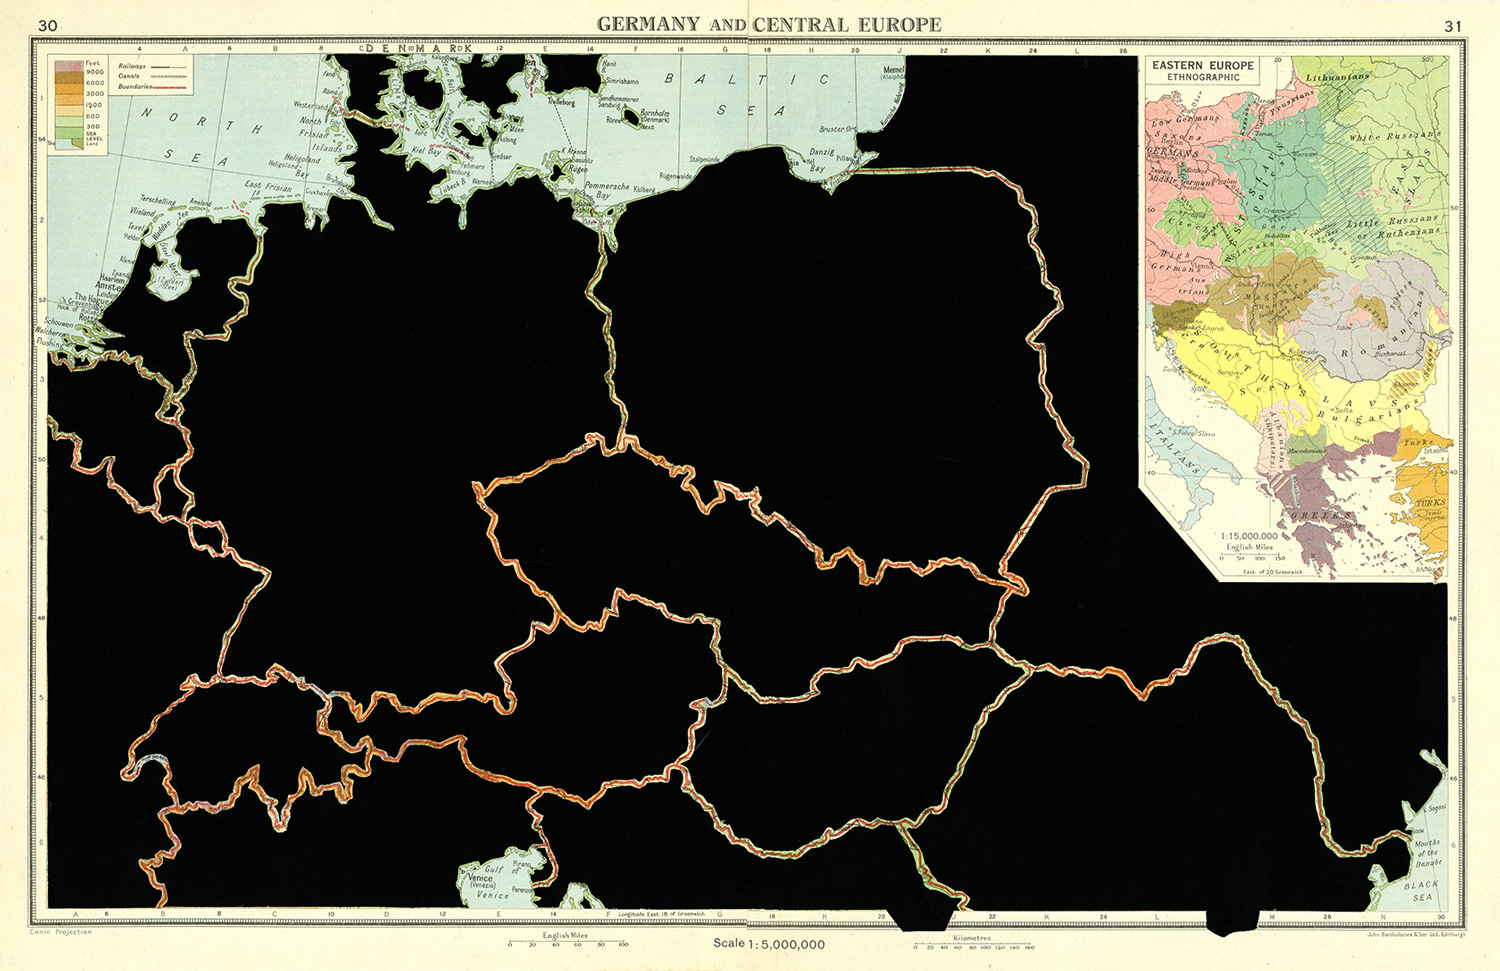 GERMANY AND CENTRAL EUROPE. De la serie: The Comparative Atlas. London 1948. 